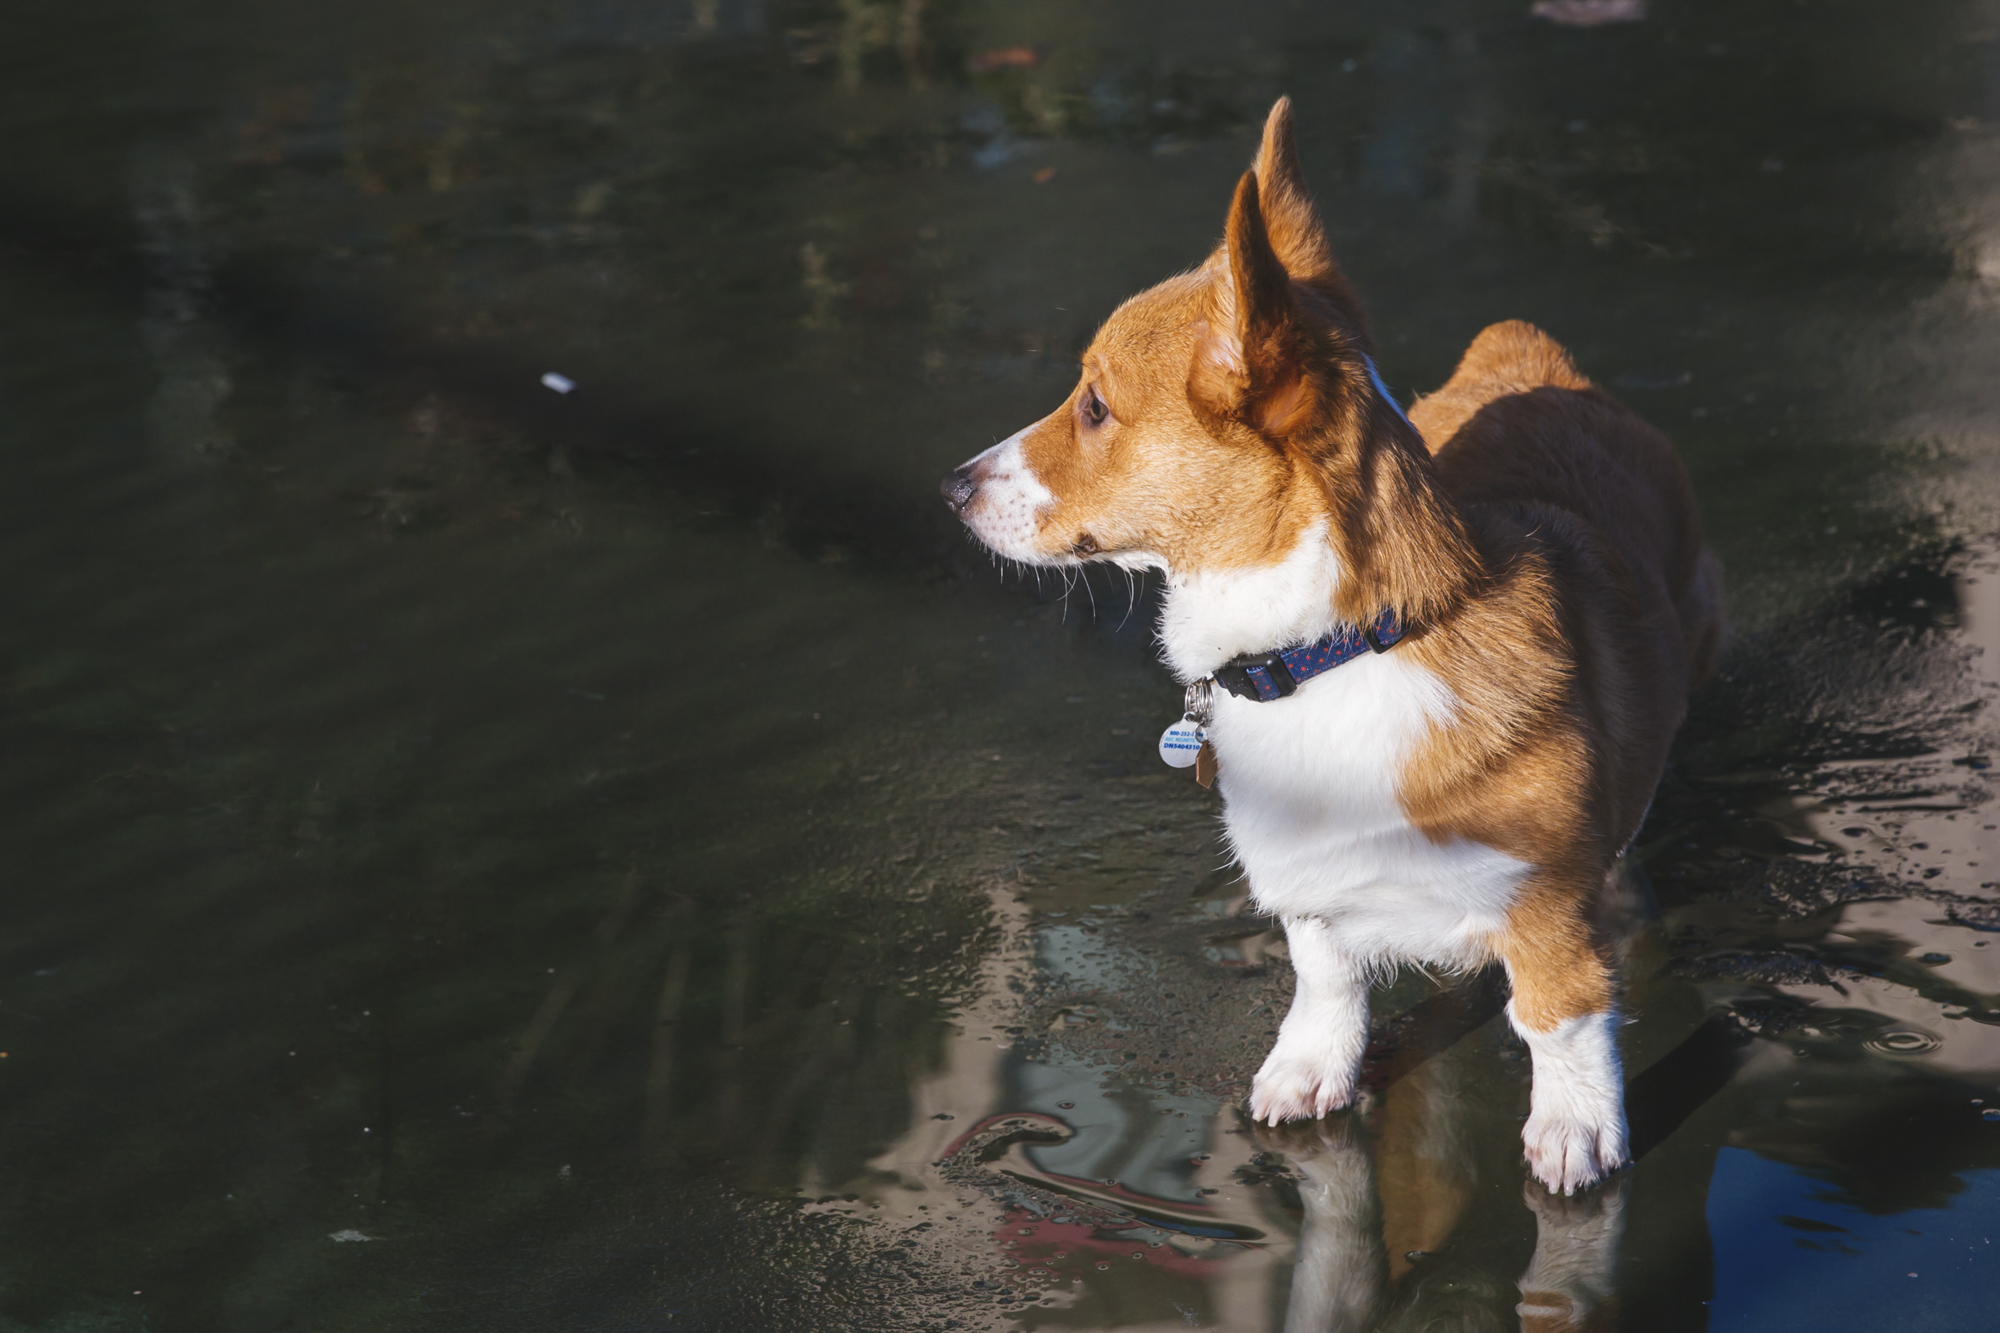 <p>Meet Floyd the six month old Pembroke Welsh Corgi! Floyd likes snuggles, food and dogs. He dislike sirens, dogs on the TV, and rain! You can follow Floyd's journey through life on his Instagram page @floyd_corgi.{&amp;nbsp;}The Seattle RUFFined Spotlight is a weekly profile of local pets living and loving life in the PNW. If you or someone you know has a pet you'd like featured, email us at hello@seattlerefined.com or tag #SeattleRUFFined and your furbaby could be the next spotlighted! (Image: Sunita Martini / Seattle Refined).</p>